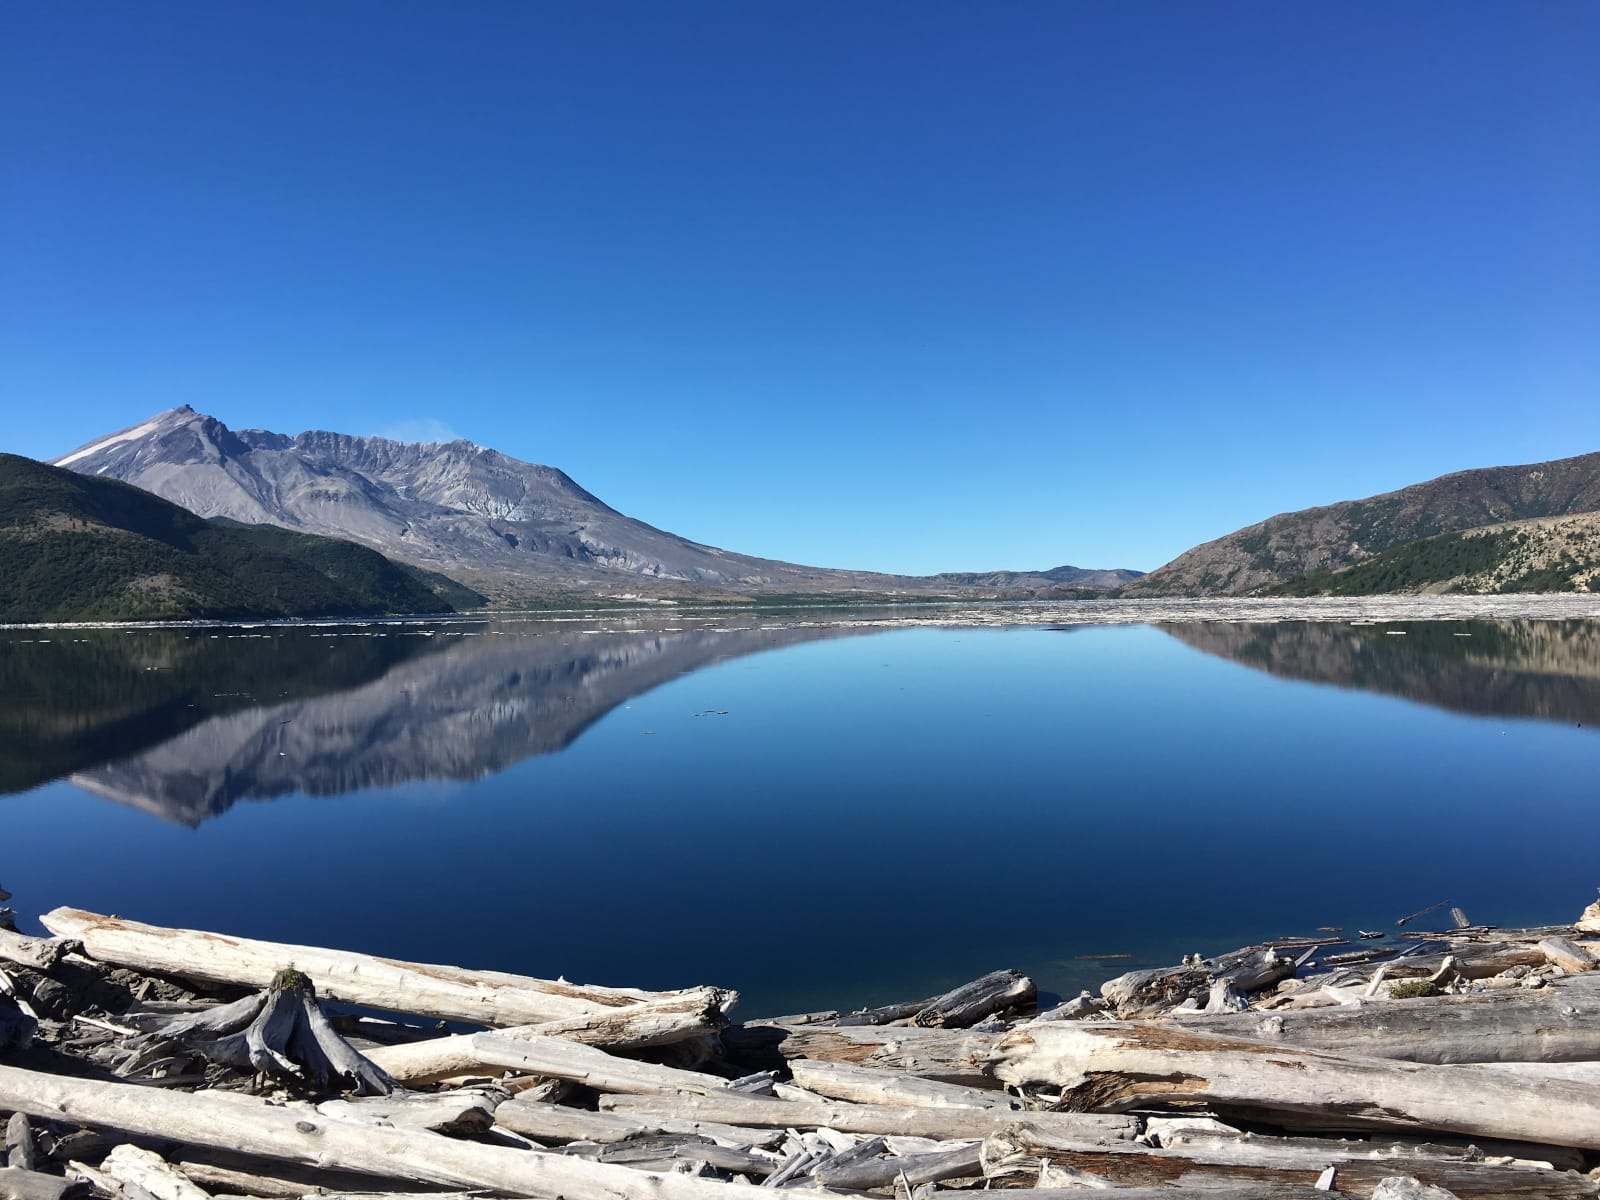 mountain reflected in lake by Amy Wagner